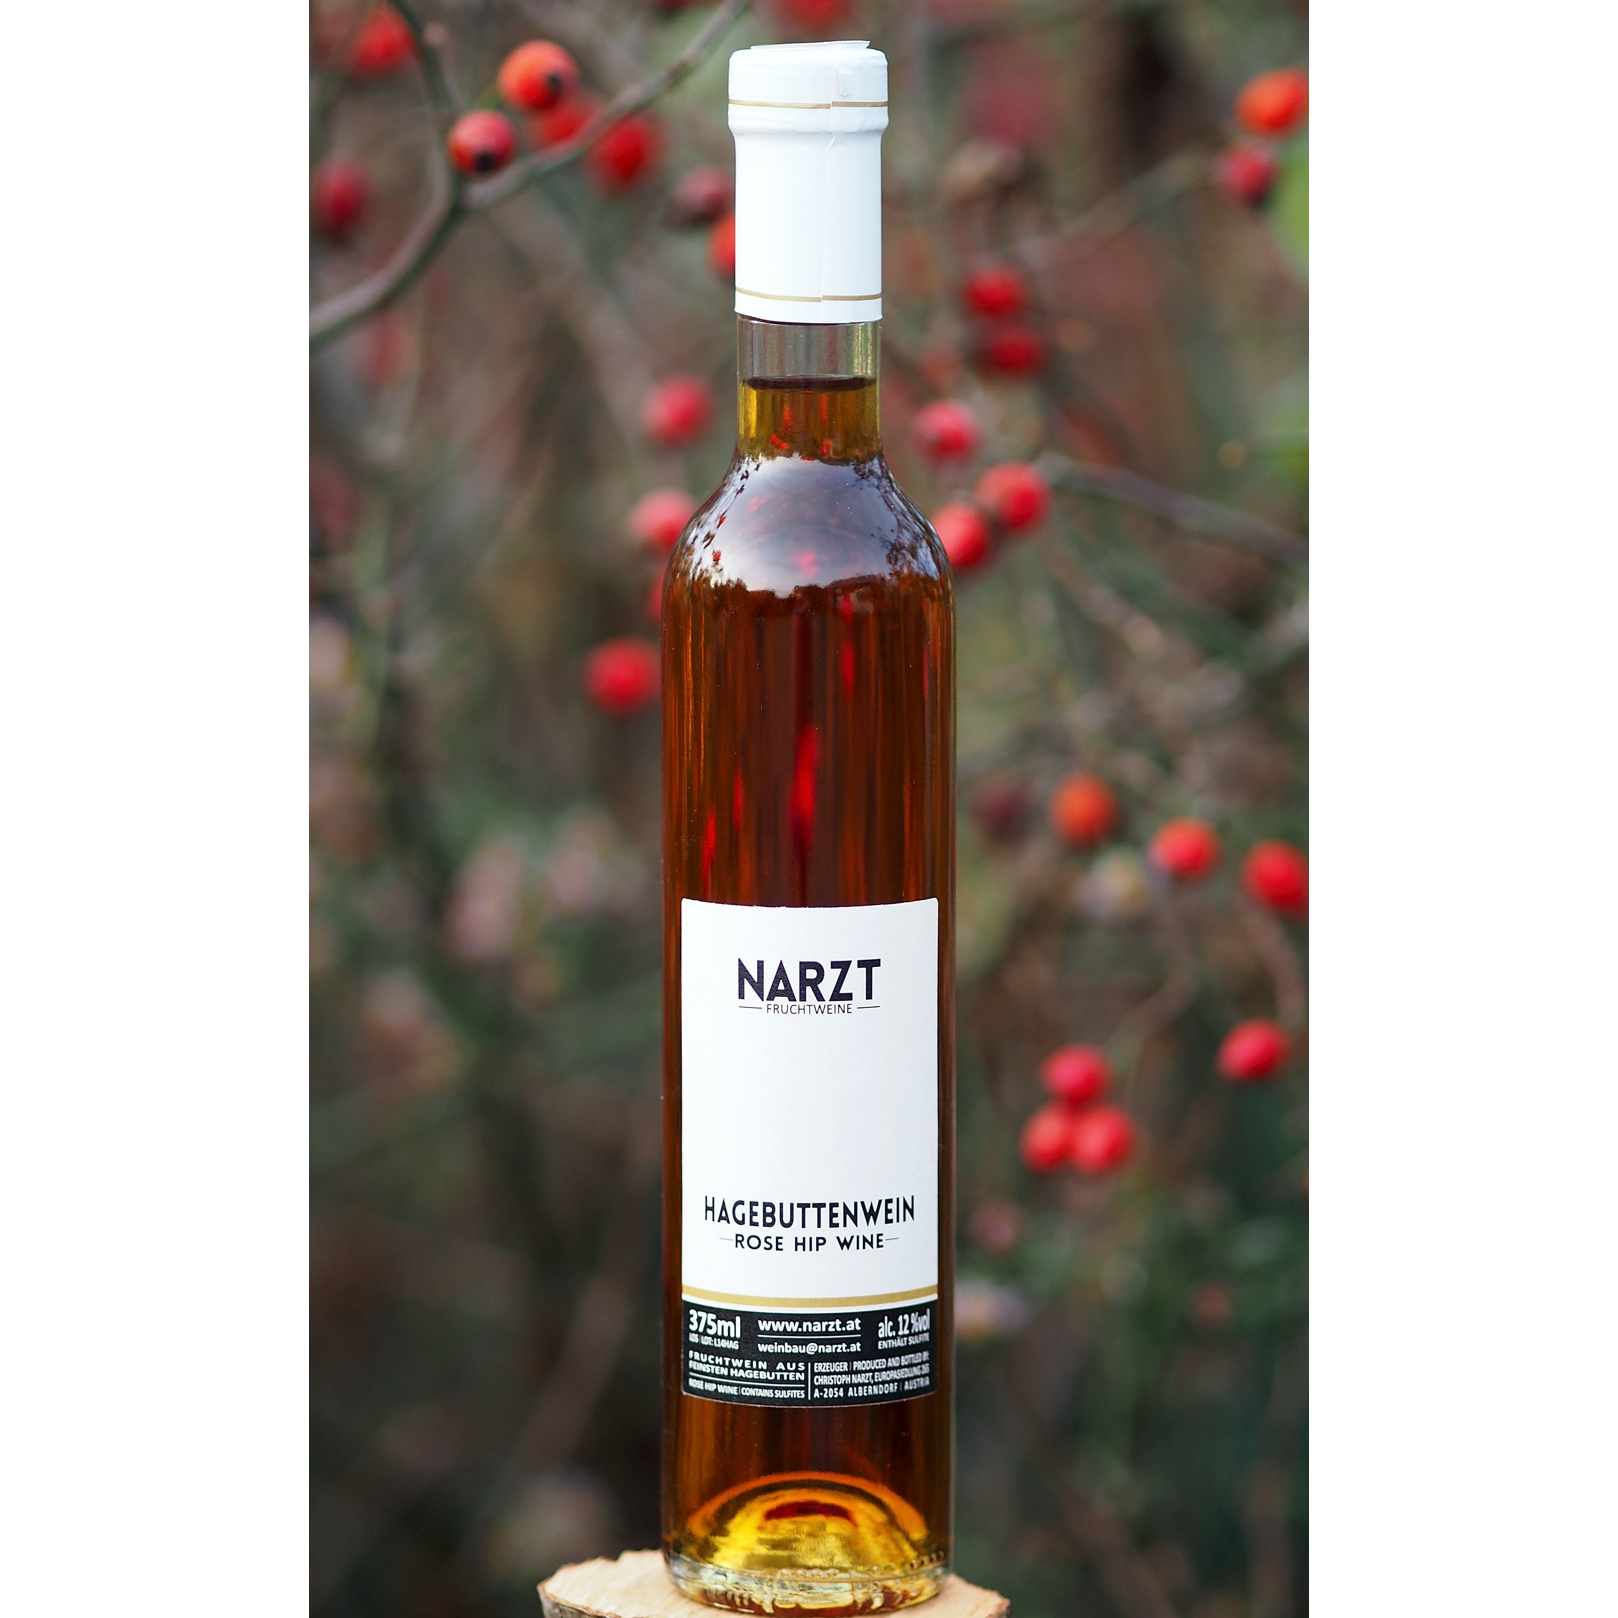 Rose Hip Wine